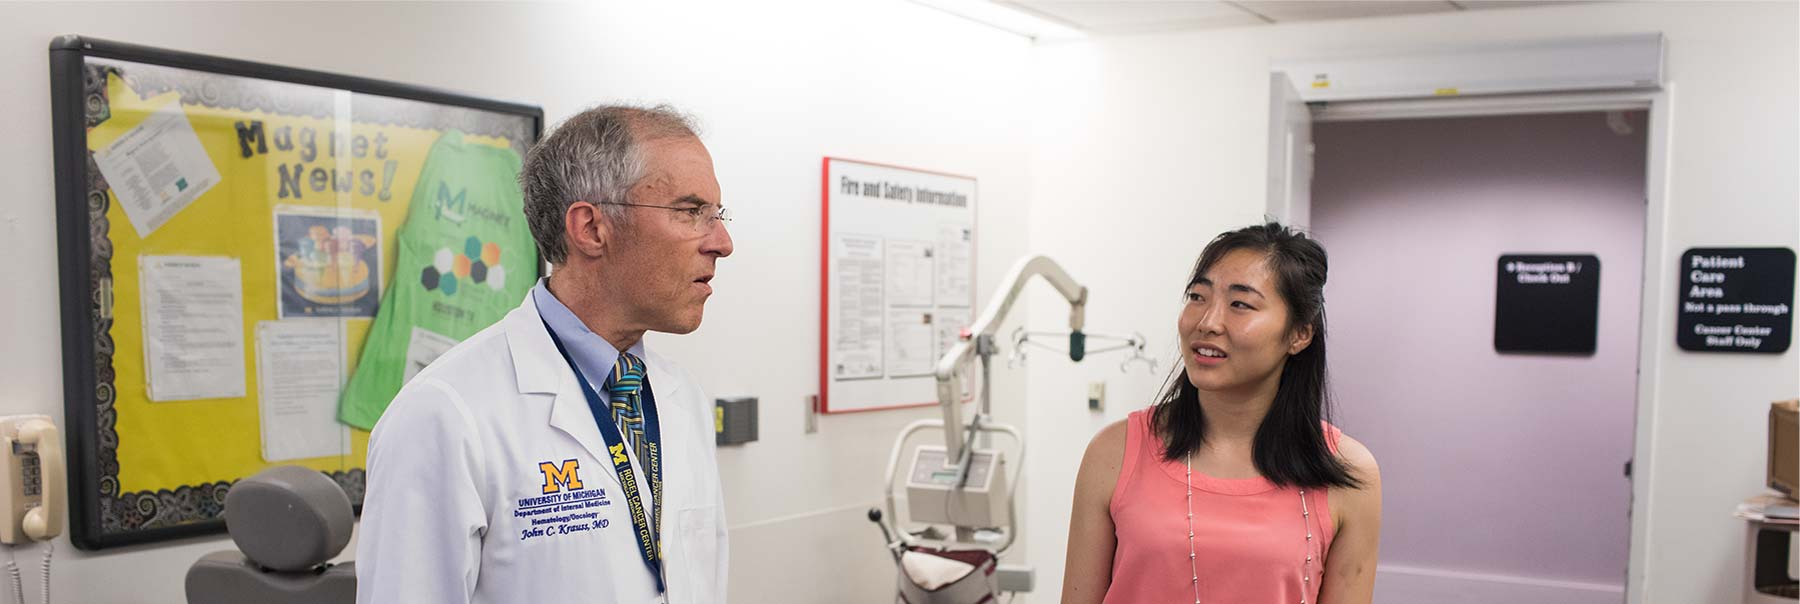 Grace Kanzawa talking with a doctor